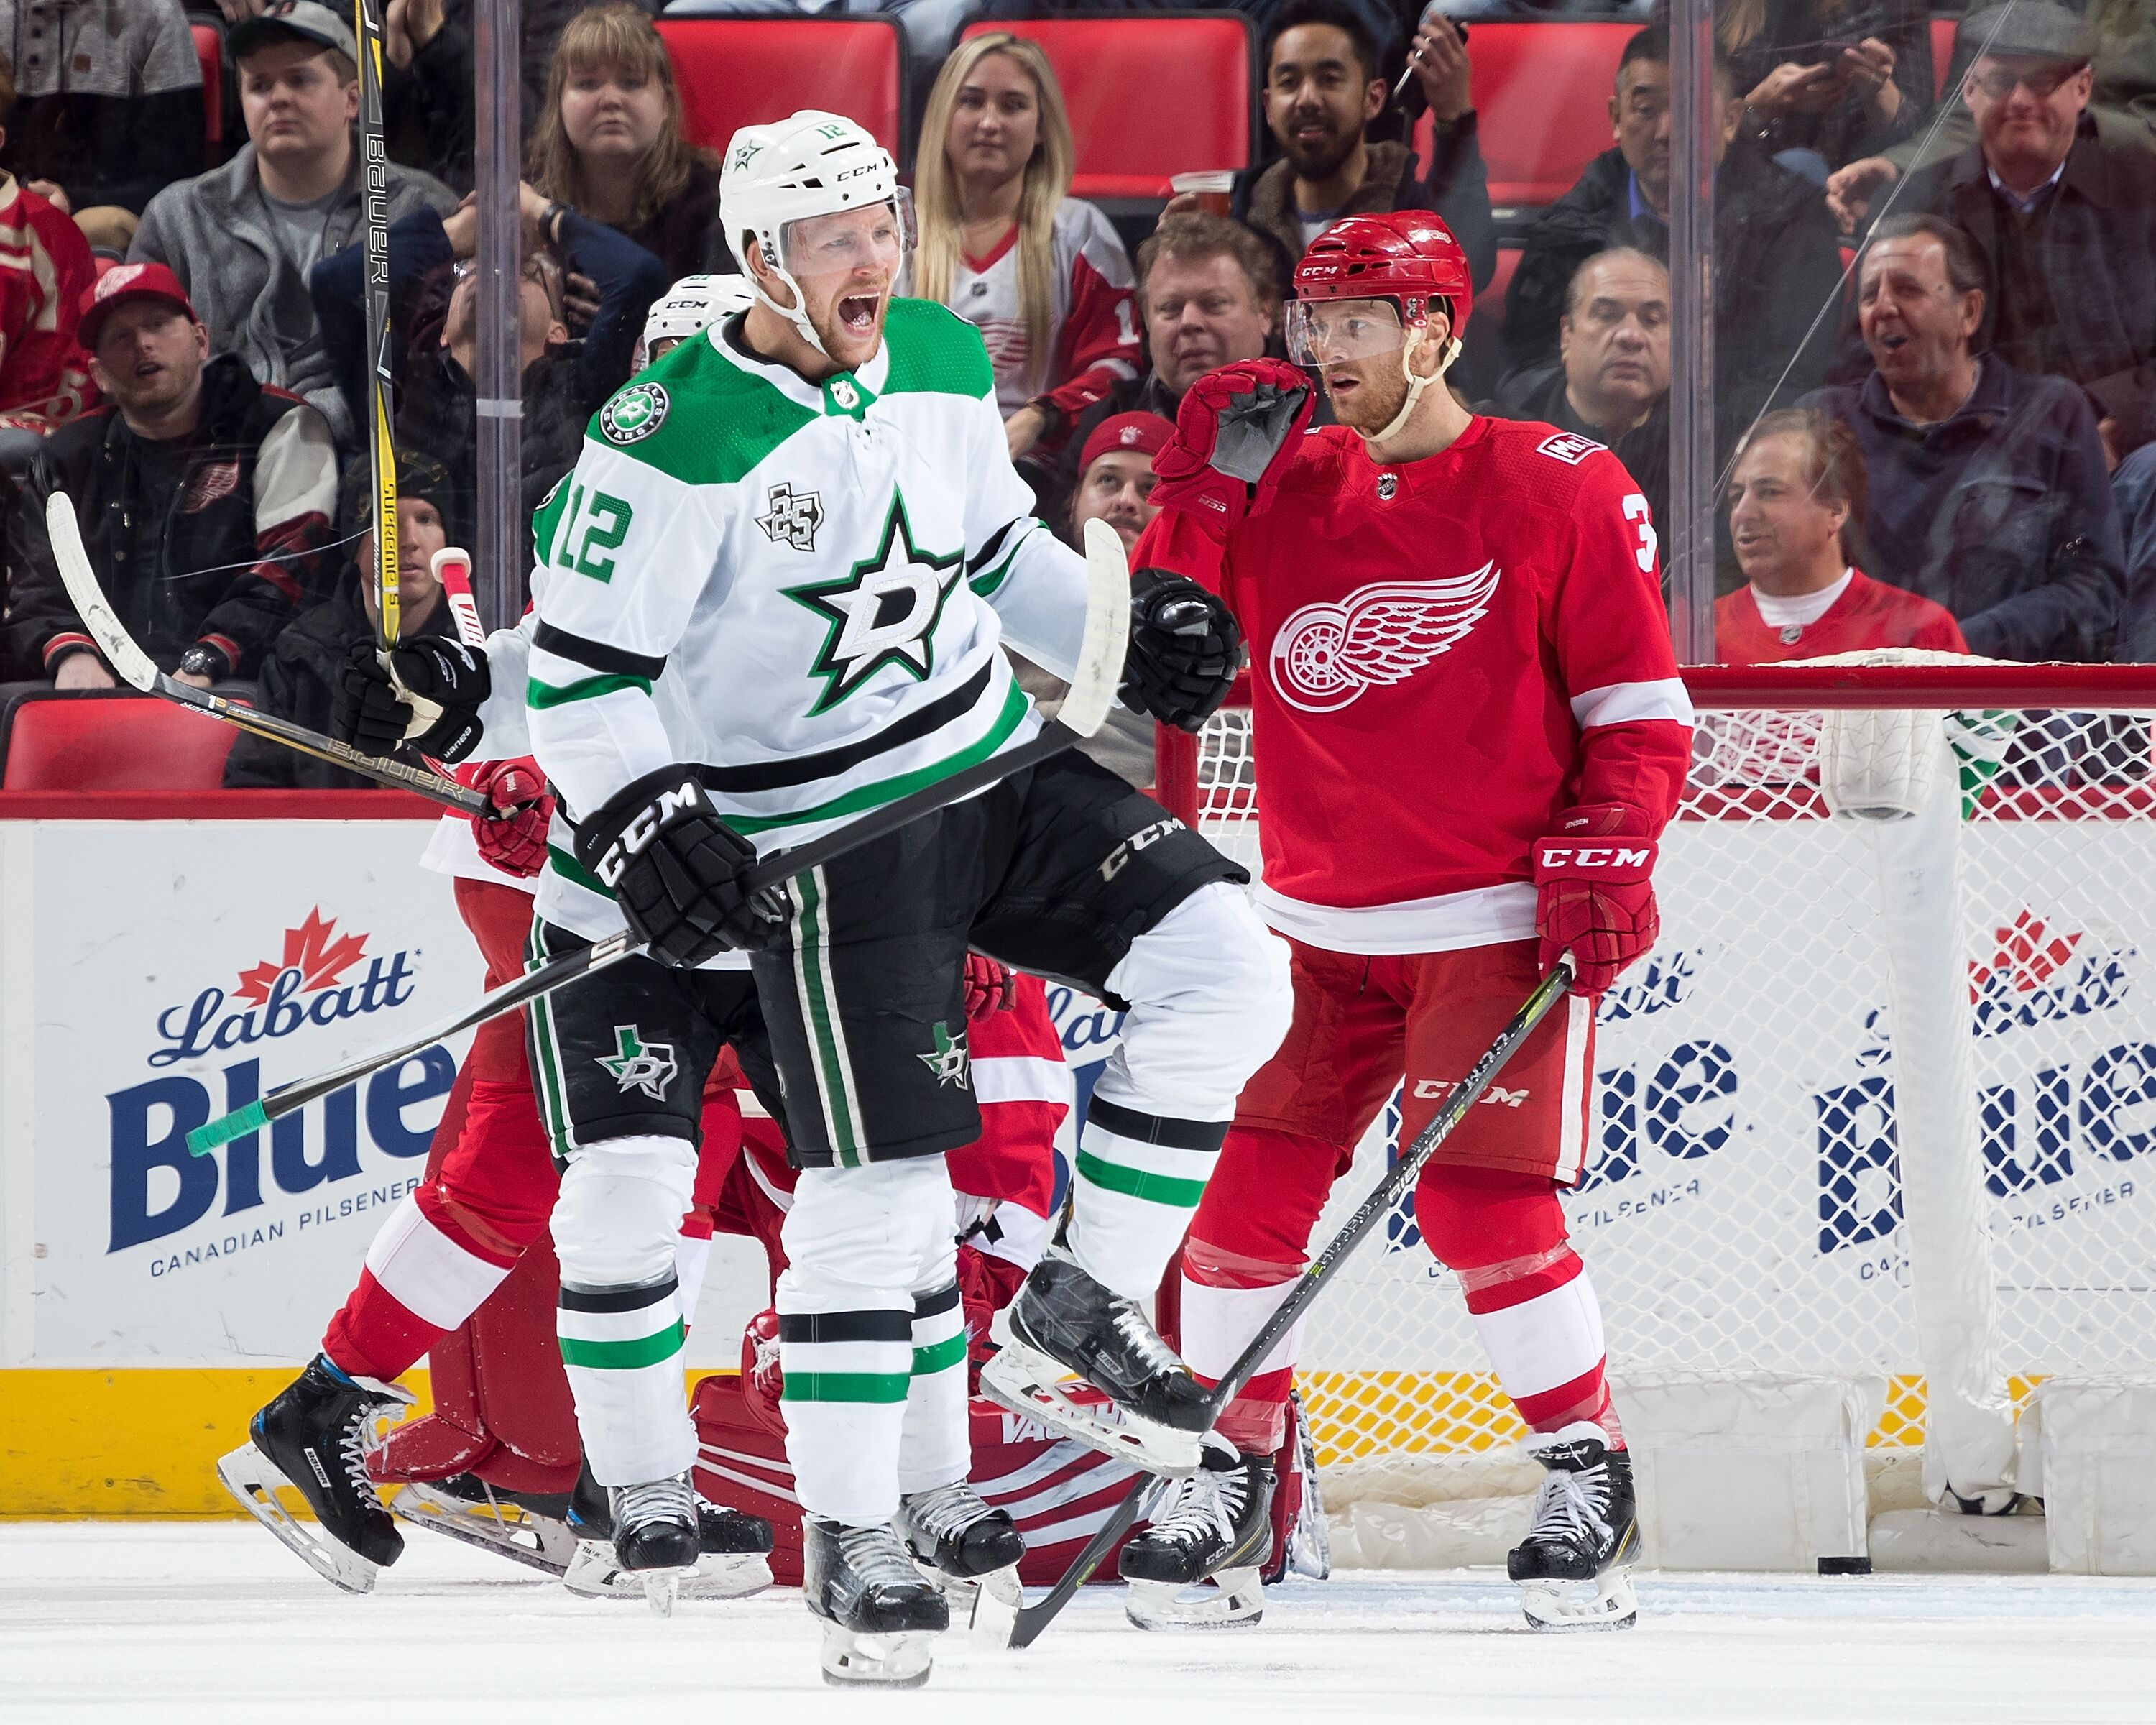 Dallas Stars  Setting Reasonable Expectations for the Road Trip 793177e7ad19